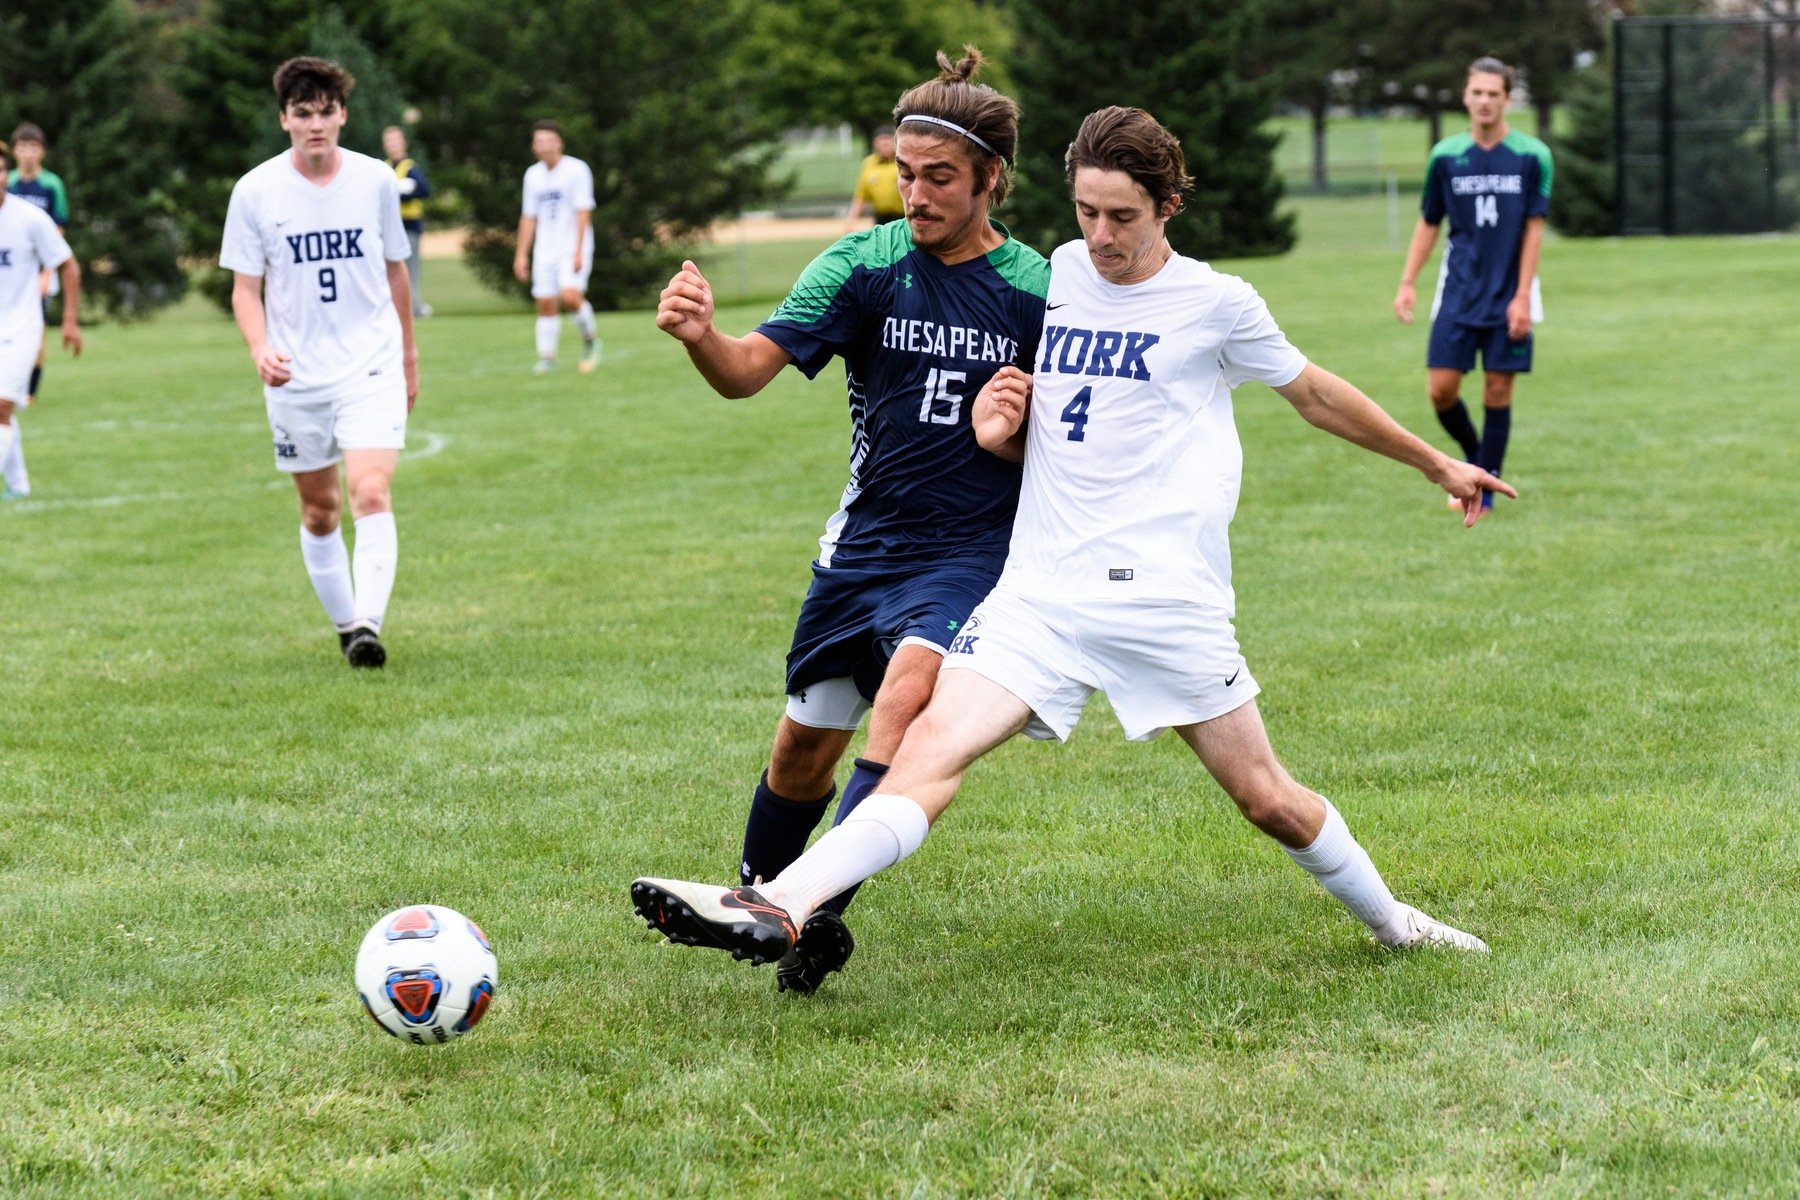 Left back Christopher Verderame challenges for the ball in a game earlier this season.